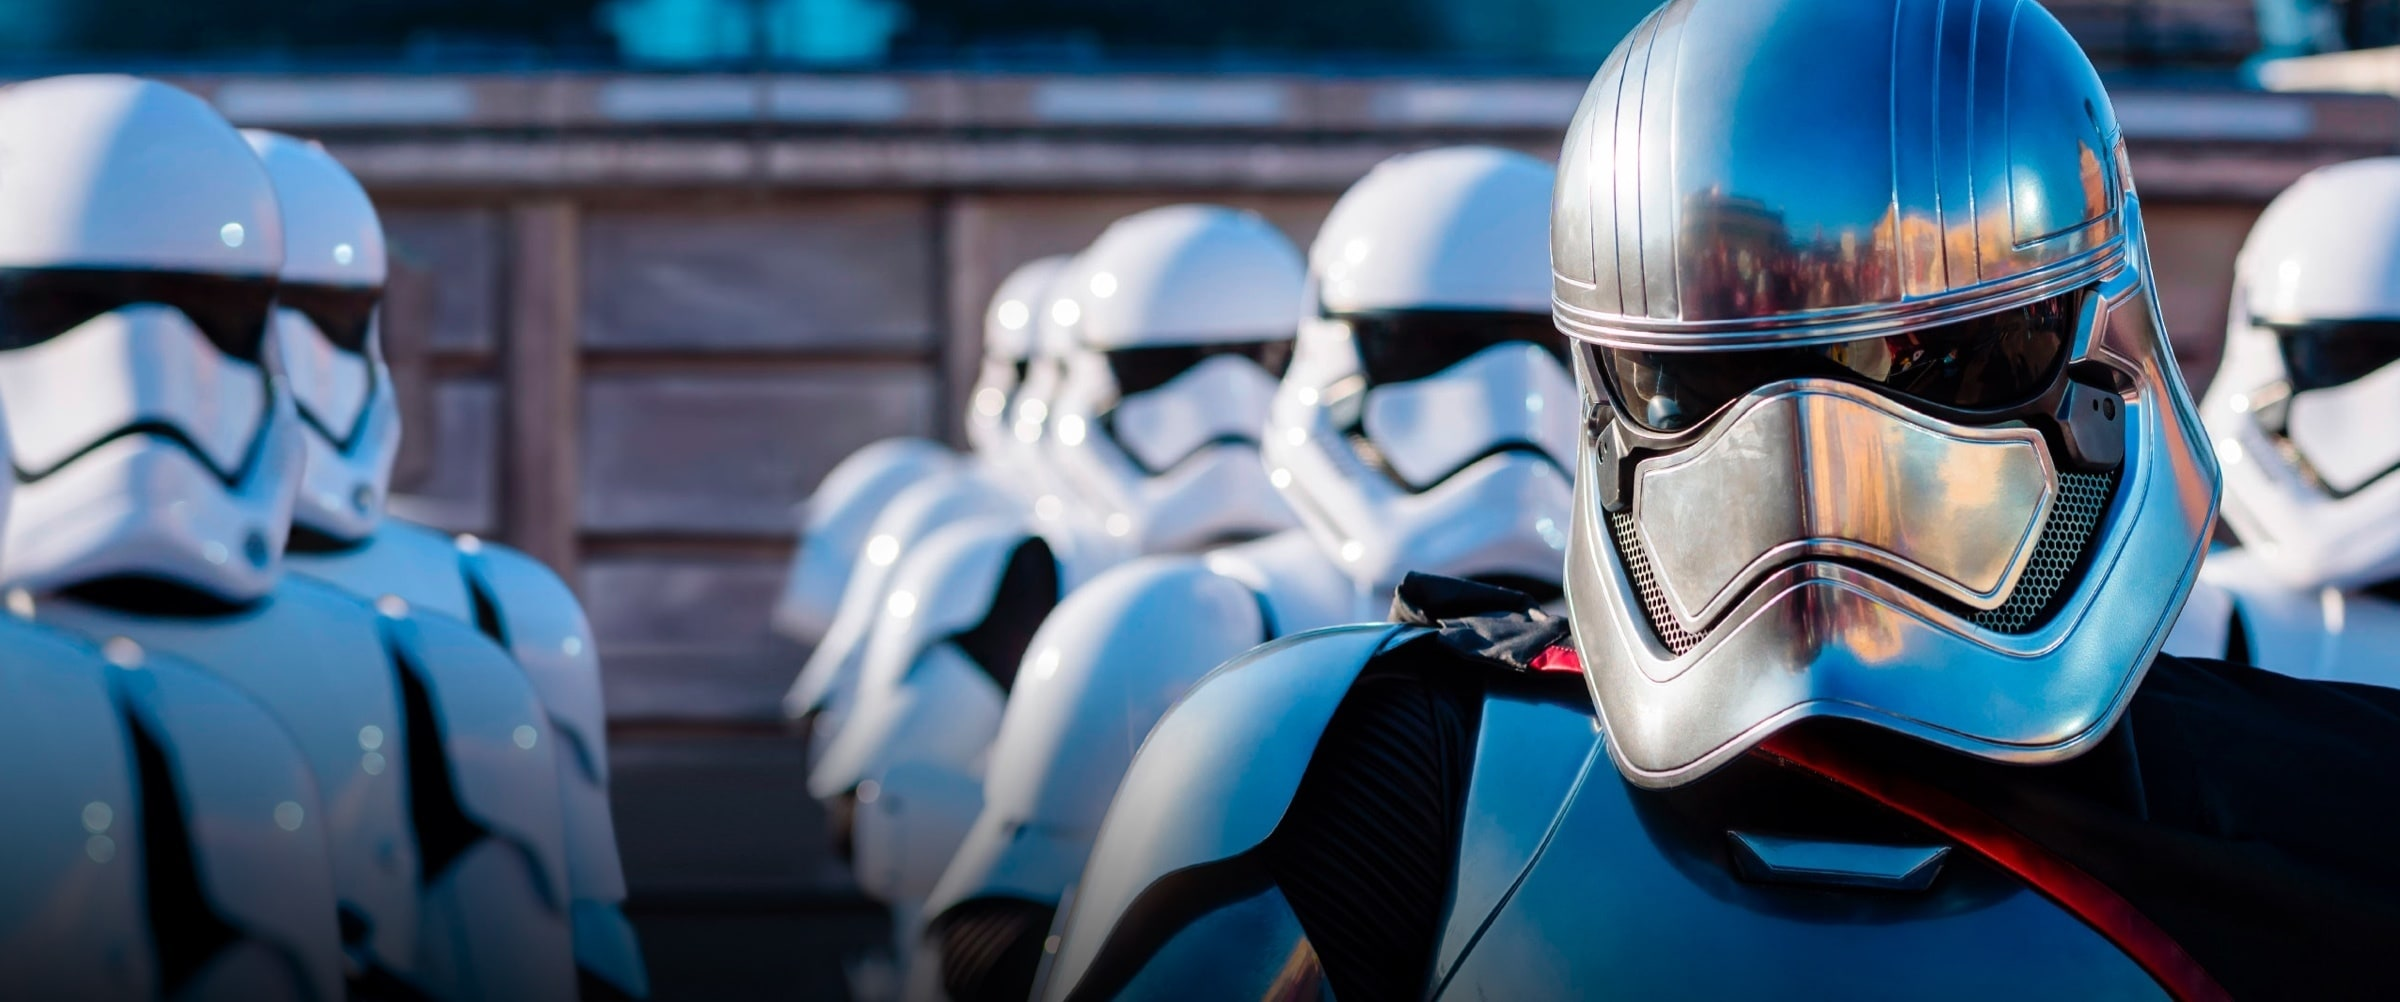 Top | Disneyland Paris | Season of the Force